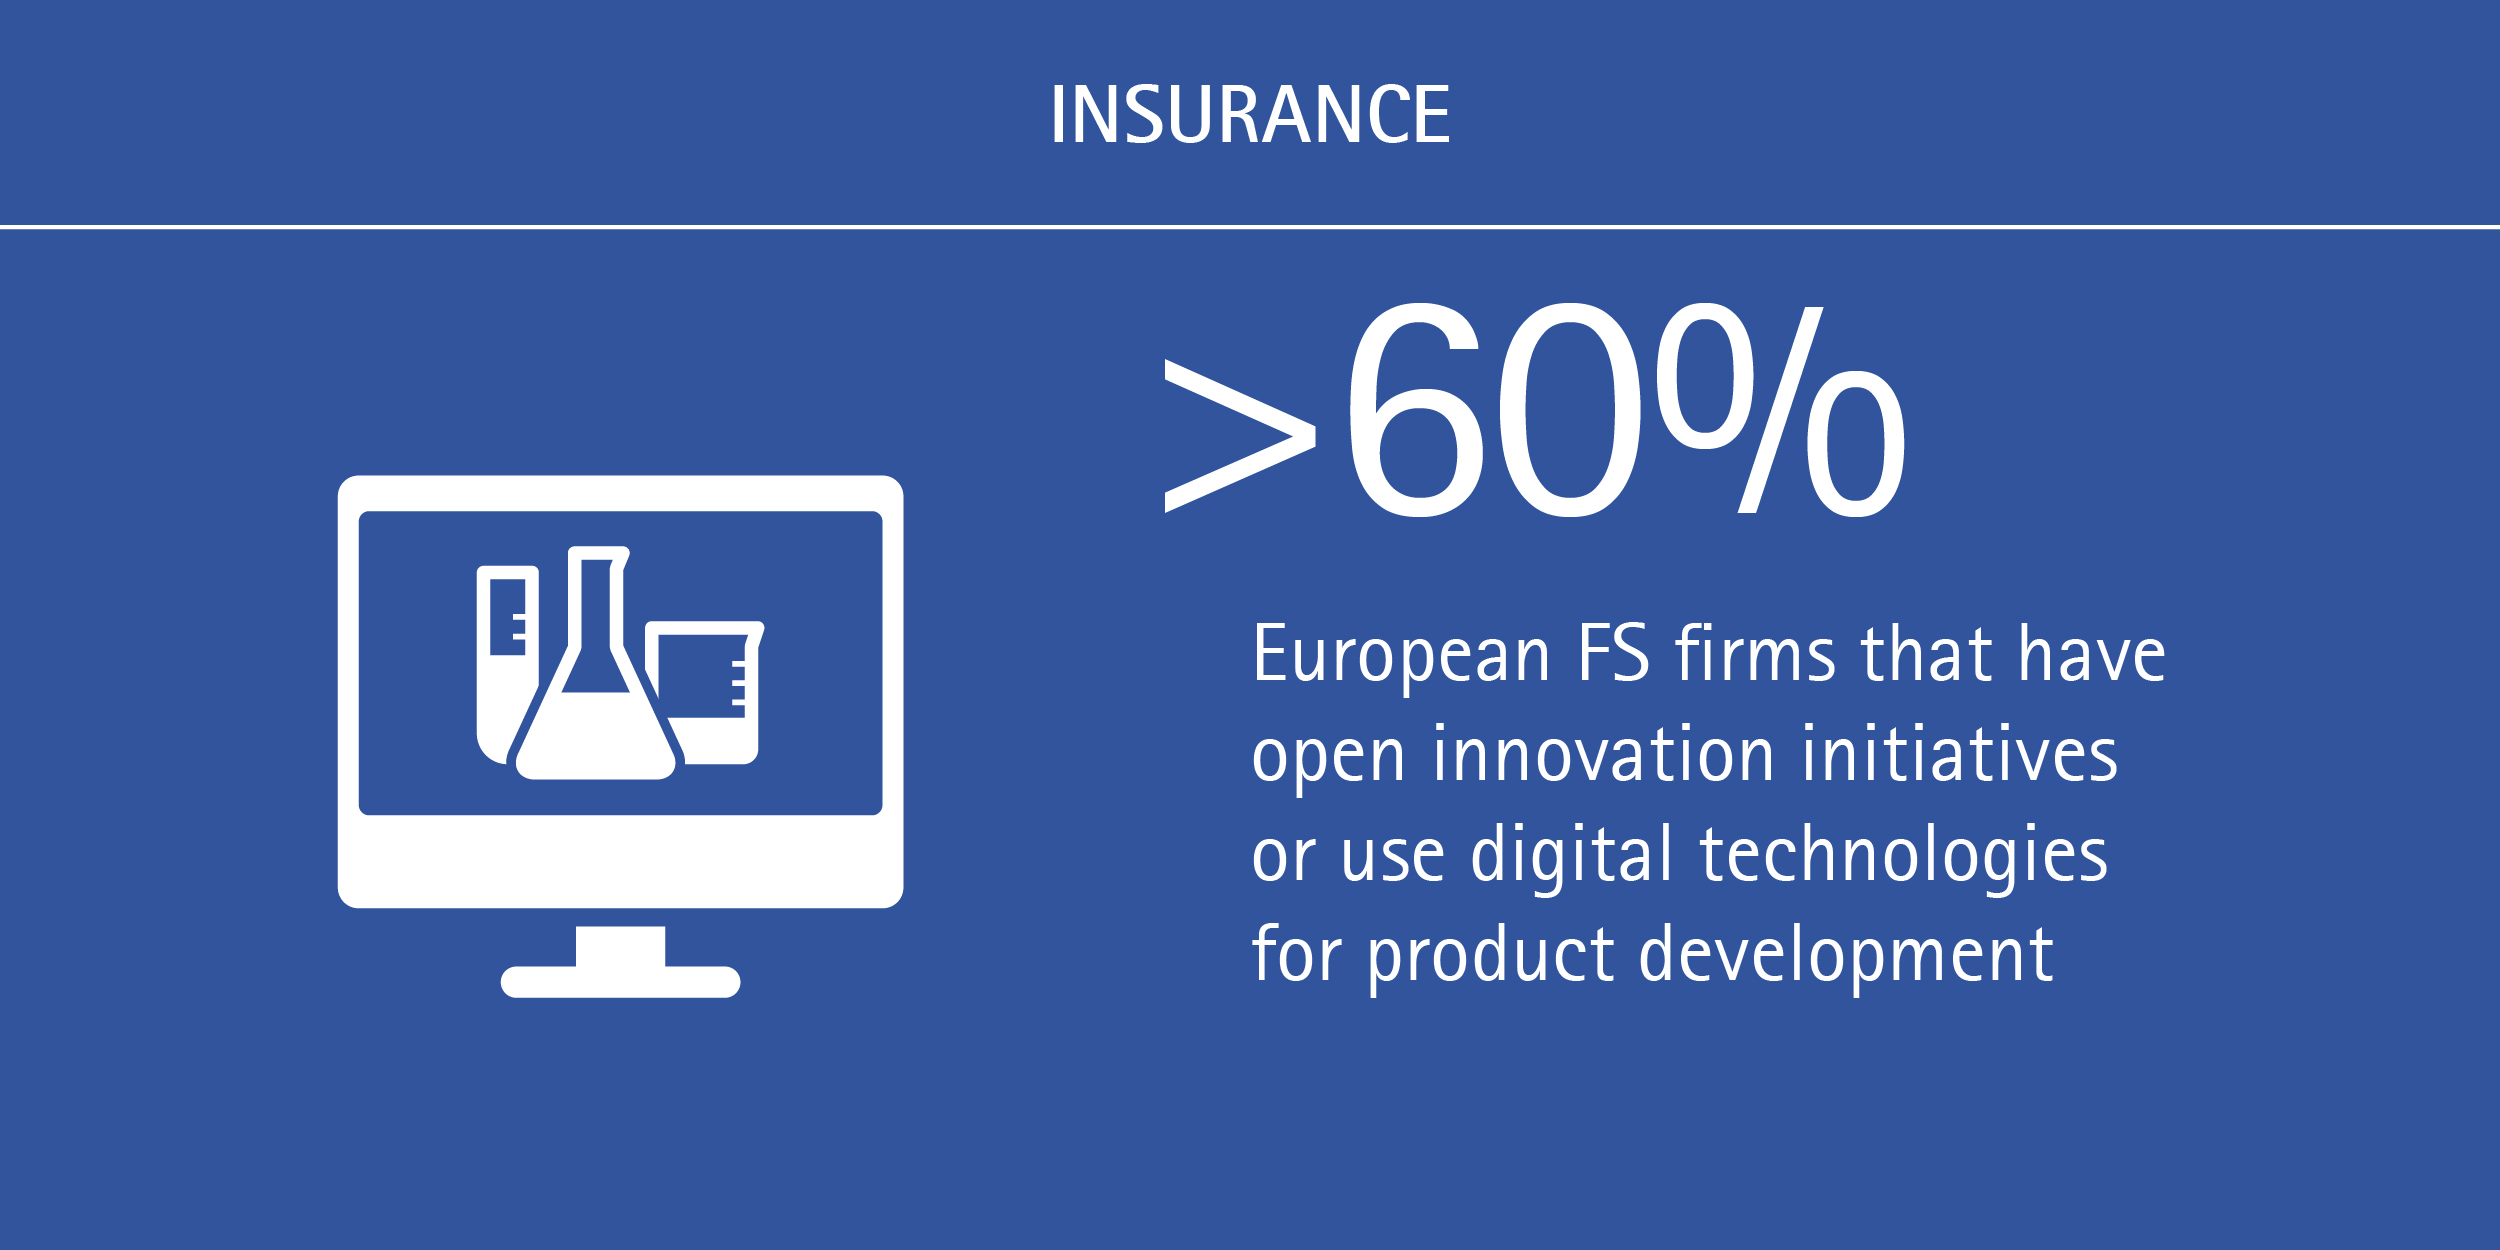 European banks and insurers need to close the digital production gap_Accenture INS (Figure 3)